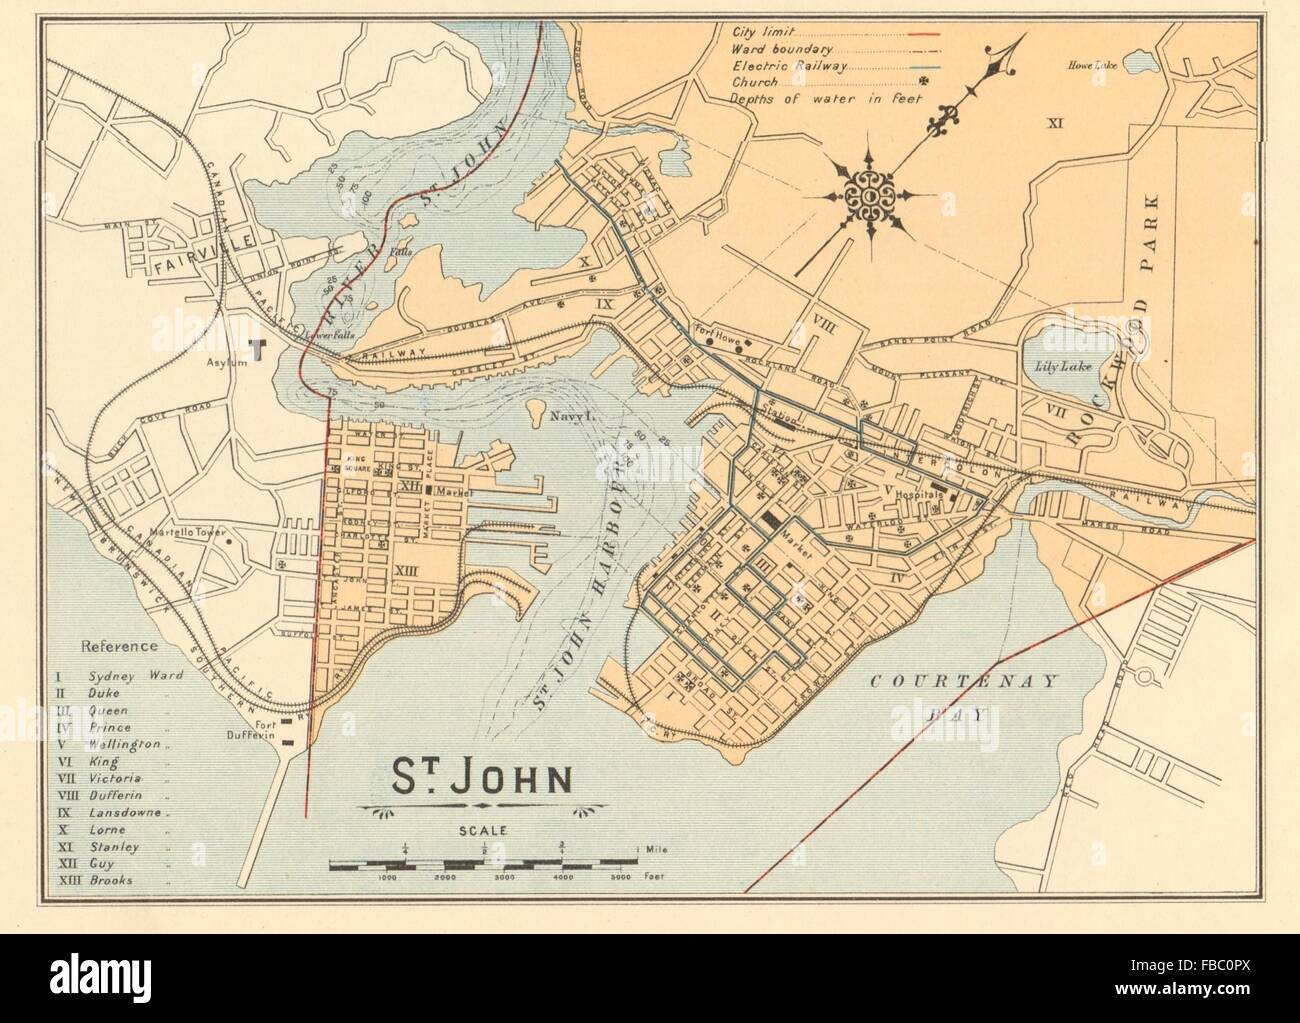 St John Town City Plan Saint John New Brunswick Canada White